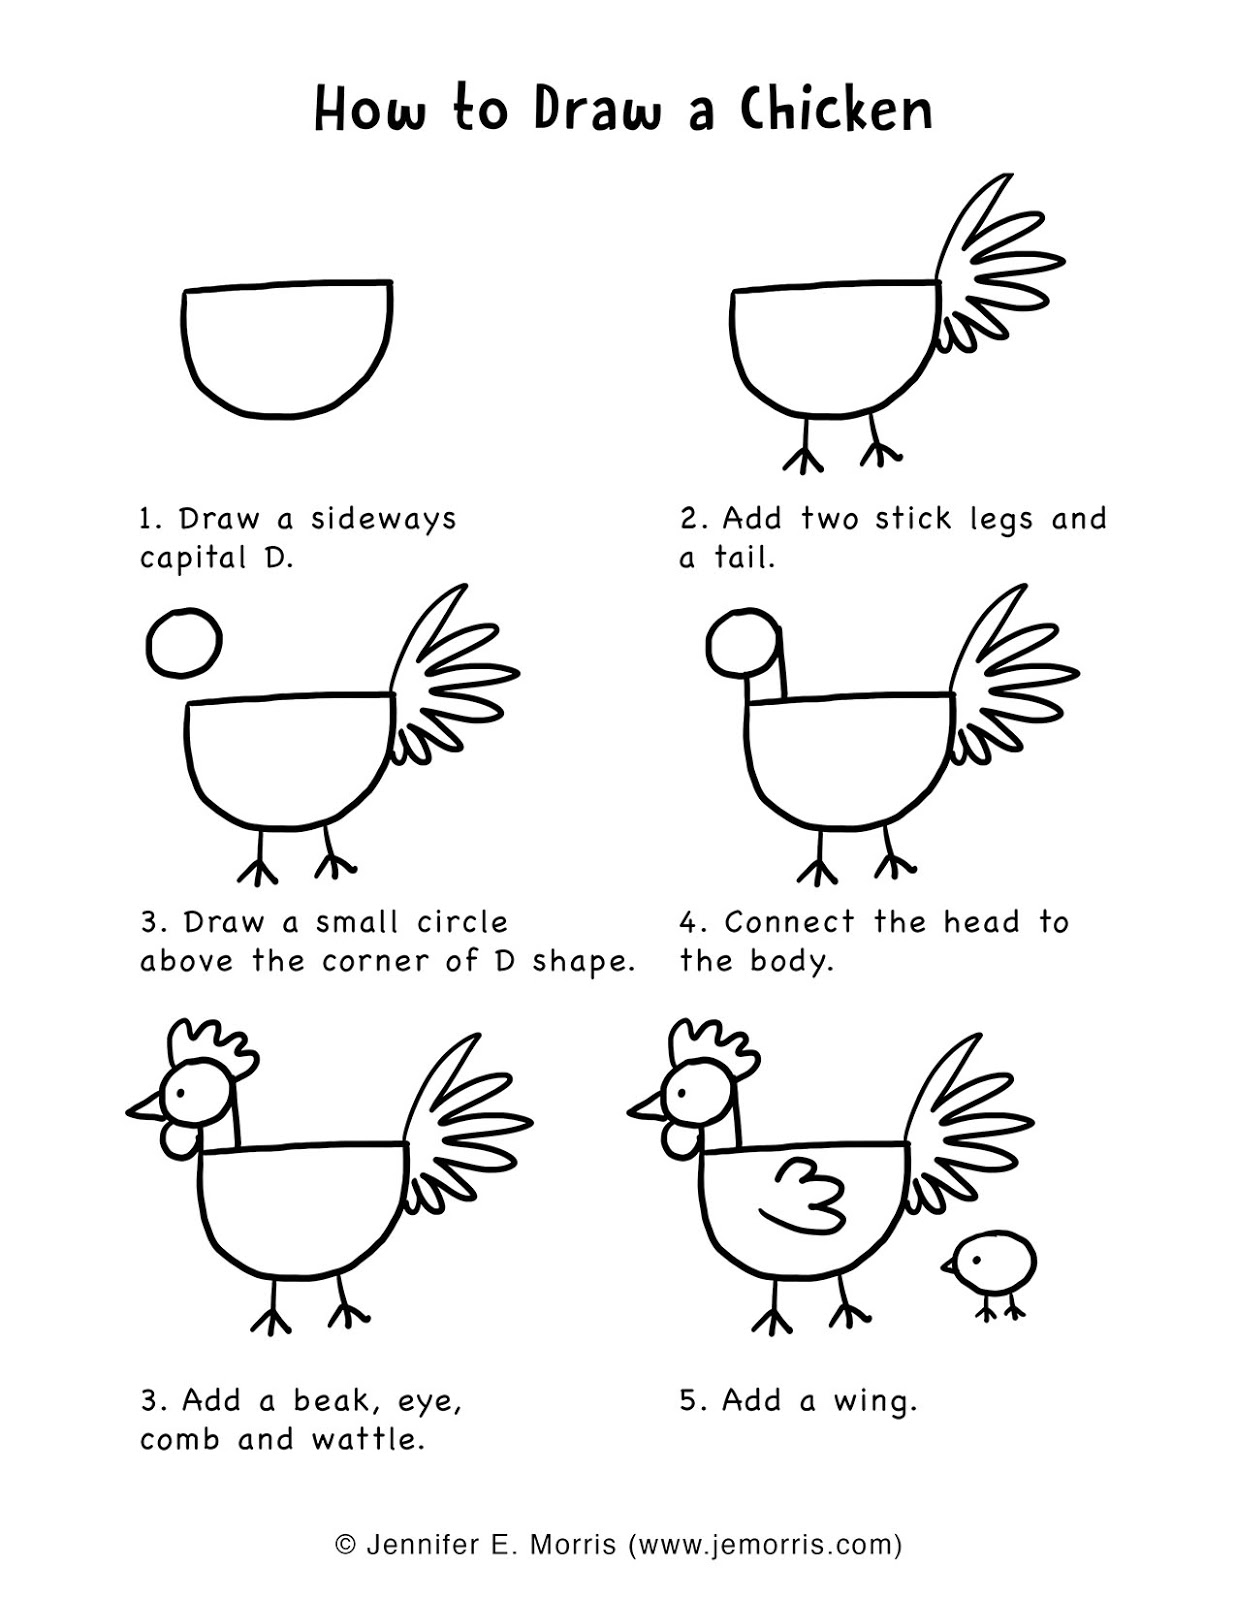 how to draw a chick how to draw a chicken outline step by step chicken a chick draw how to